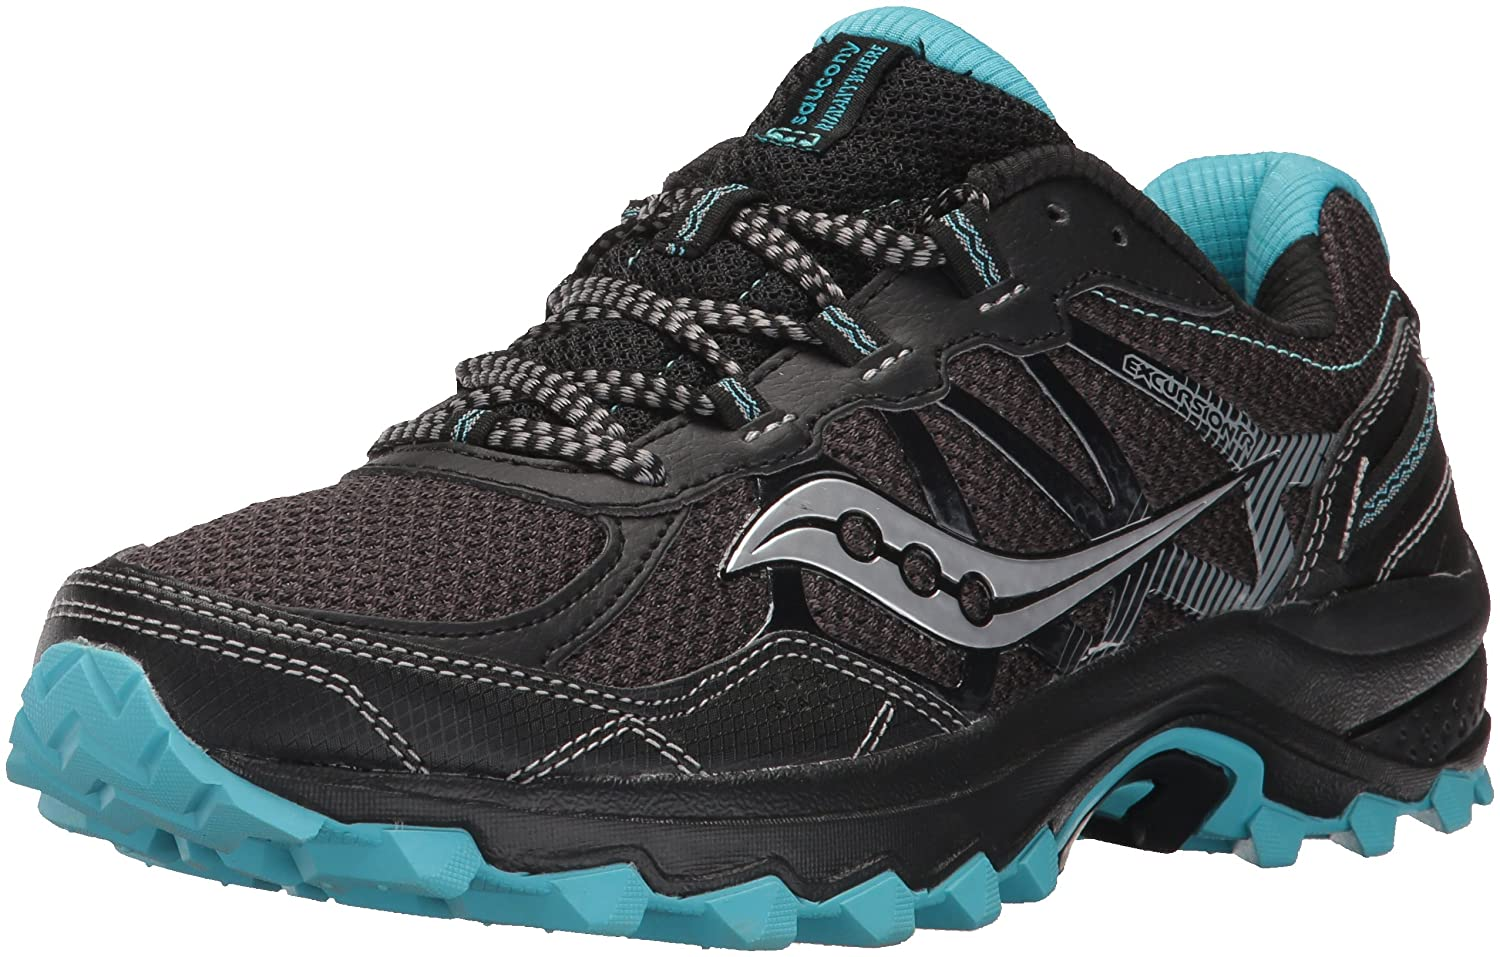 Saucony Women's Excursion Tr11 Running-Shoes B01N9LO3IQ 7 B(M) US|Black Blue